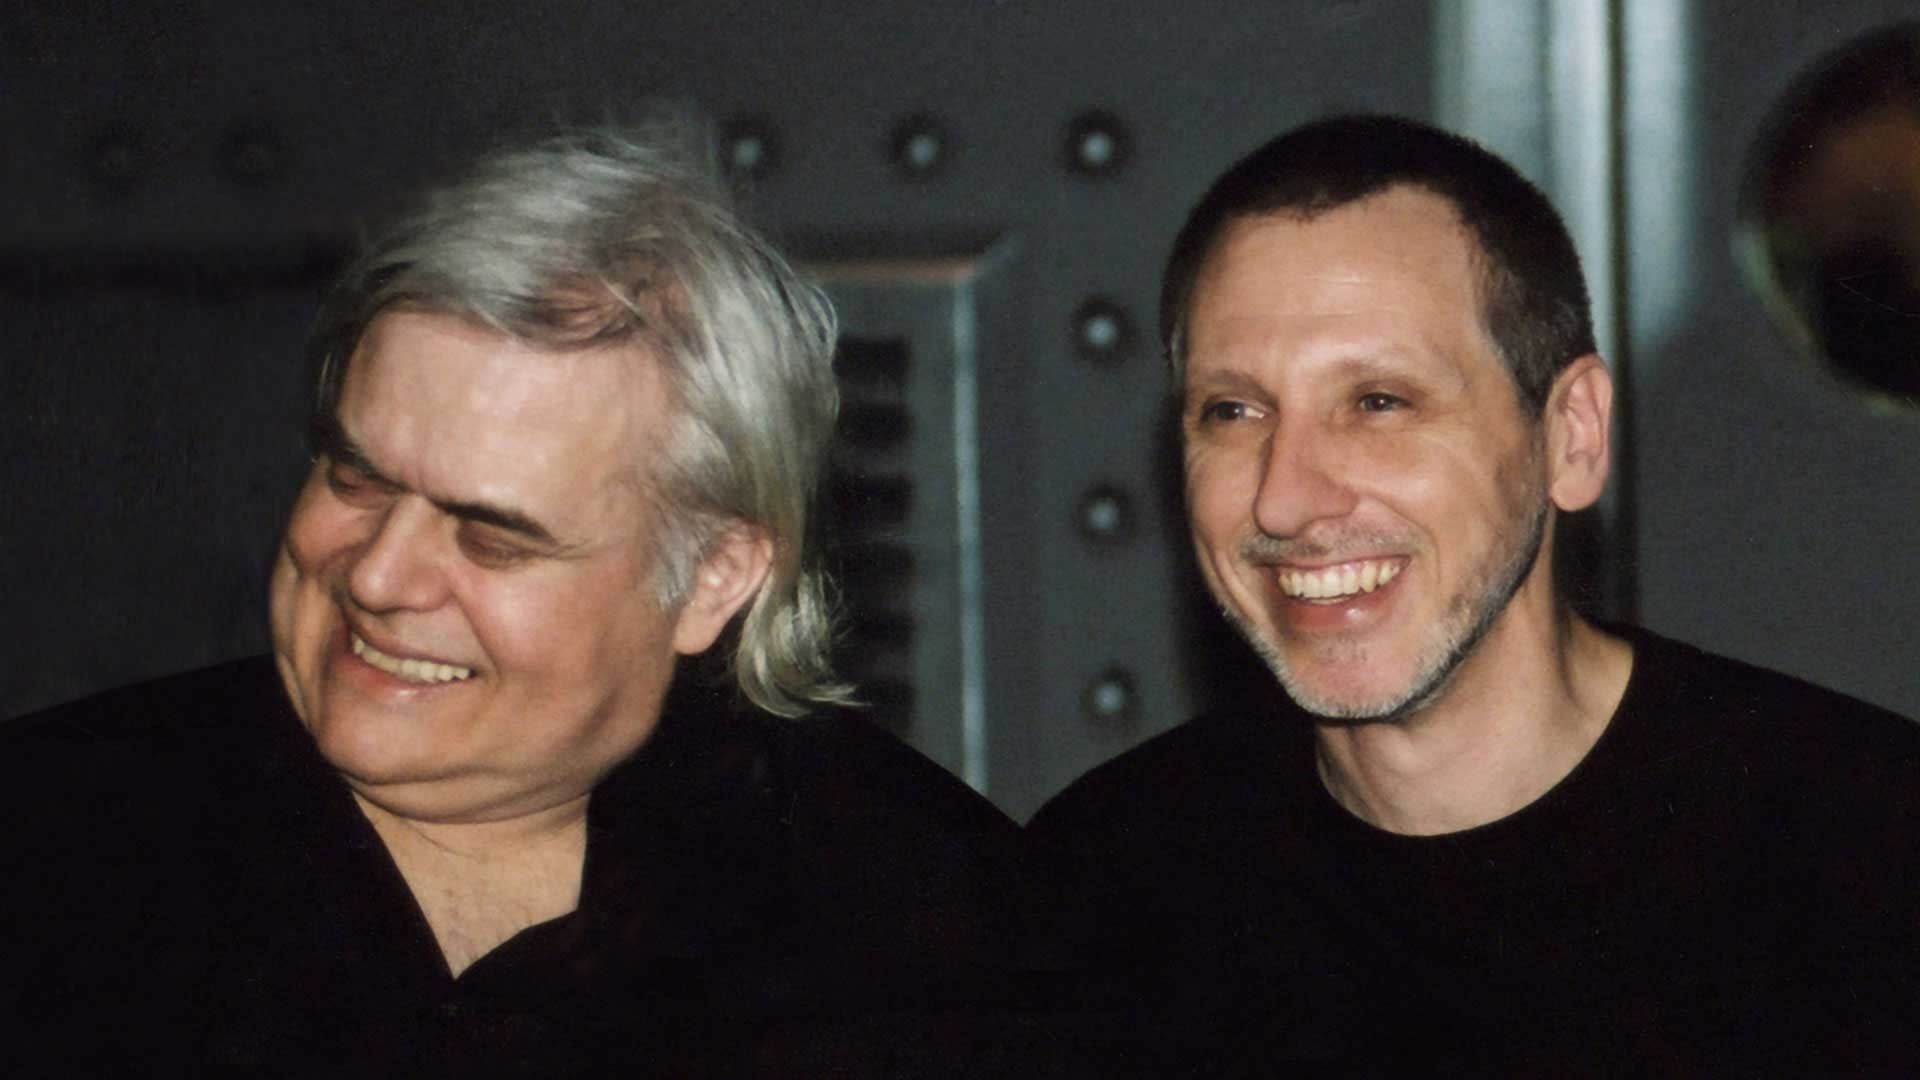 Alien creator, artist, painter and Oscar winner Hans Rudolf H.R. Giger with entrepreneur Gregor Spörri.